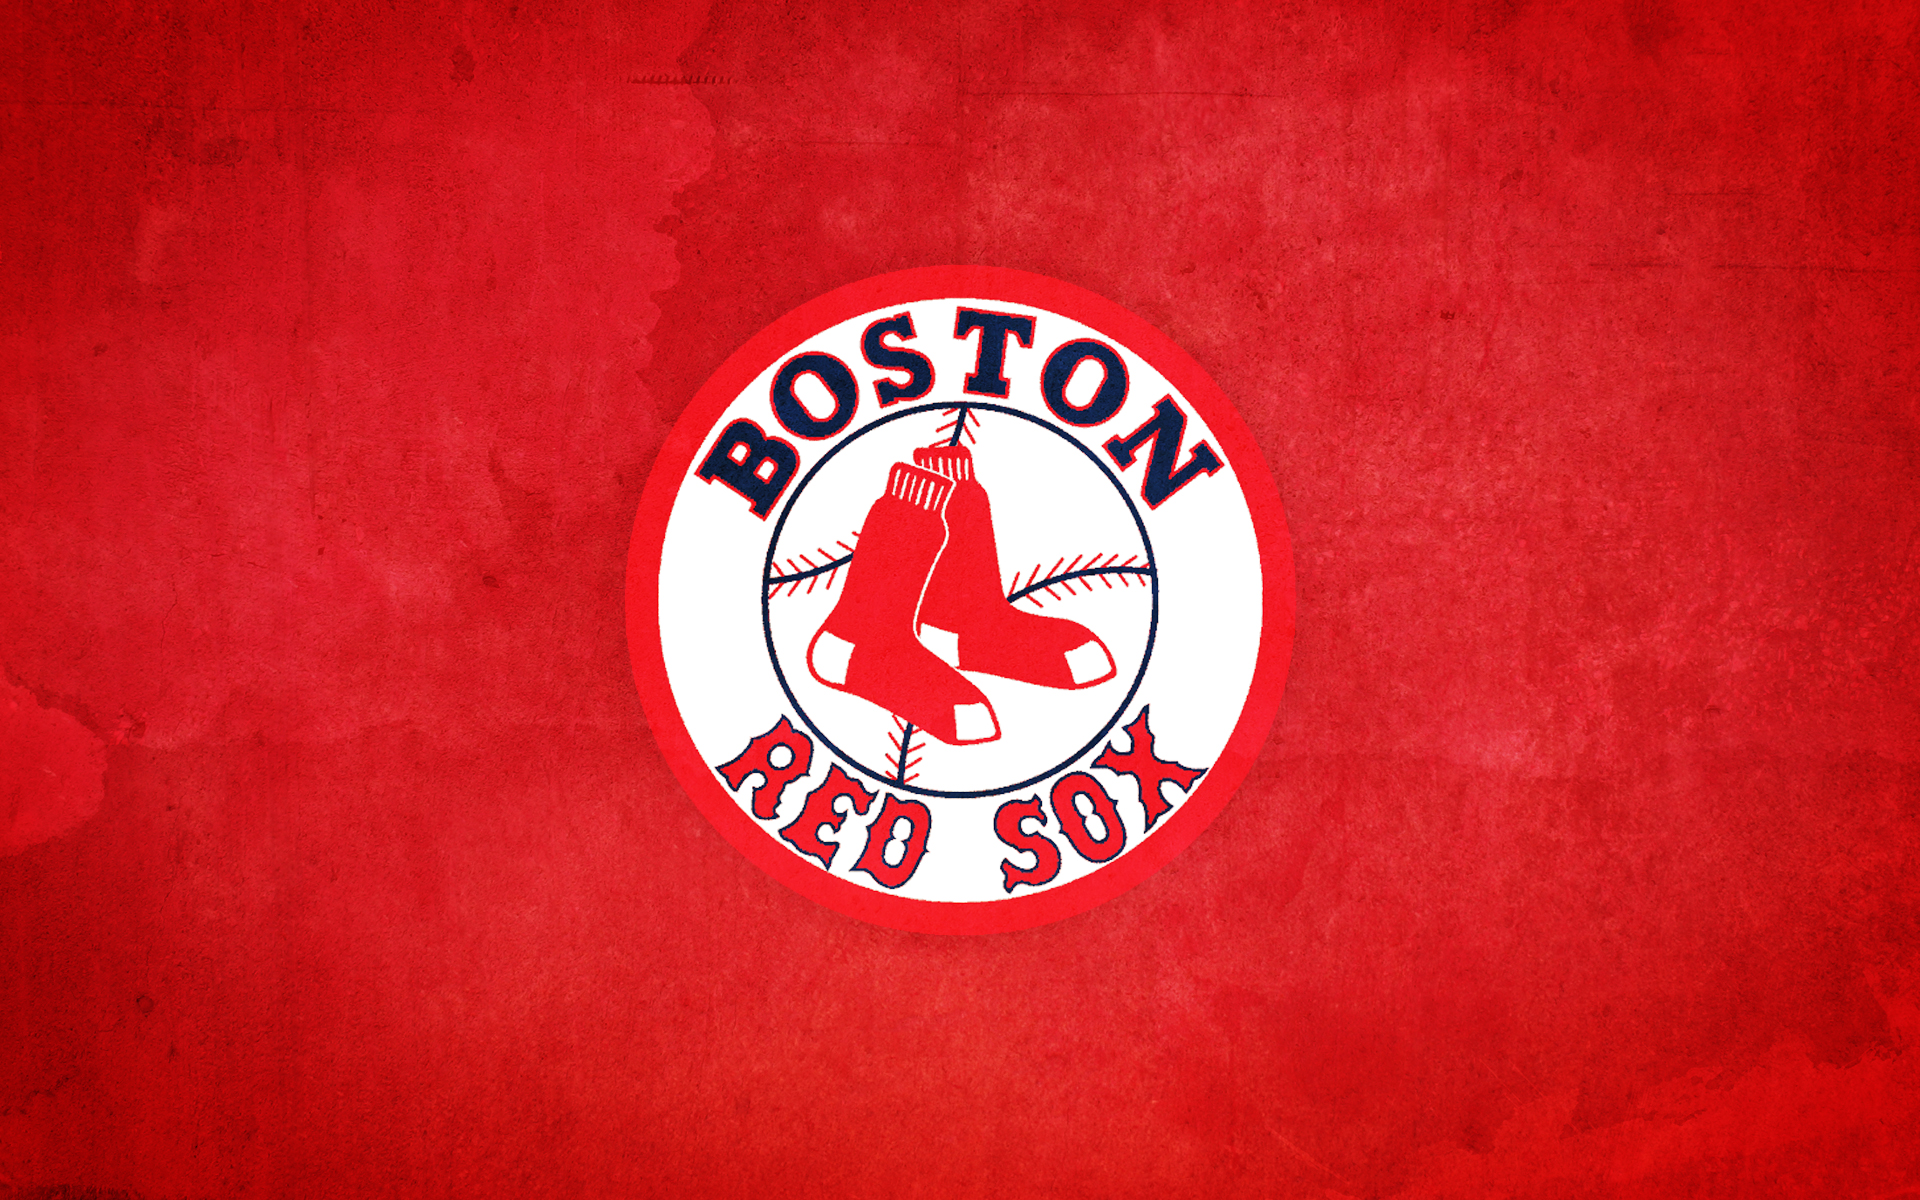 1920x1200 - Boston Red Sox Wallpaper Screensavers 27